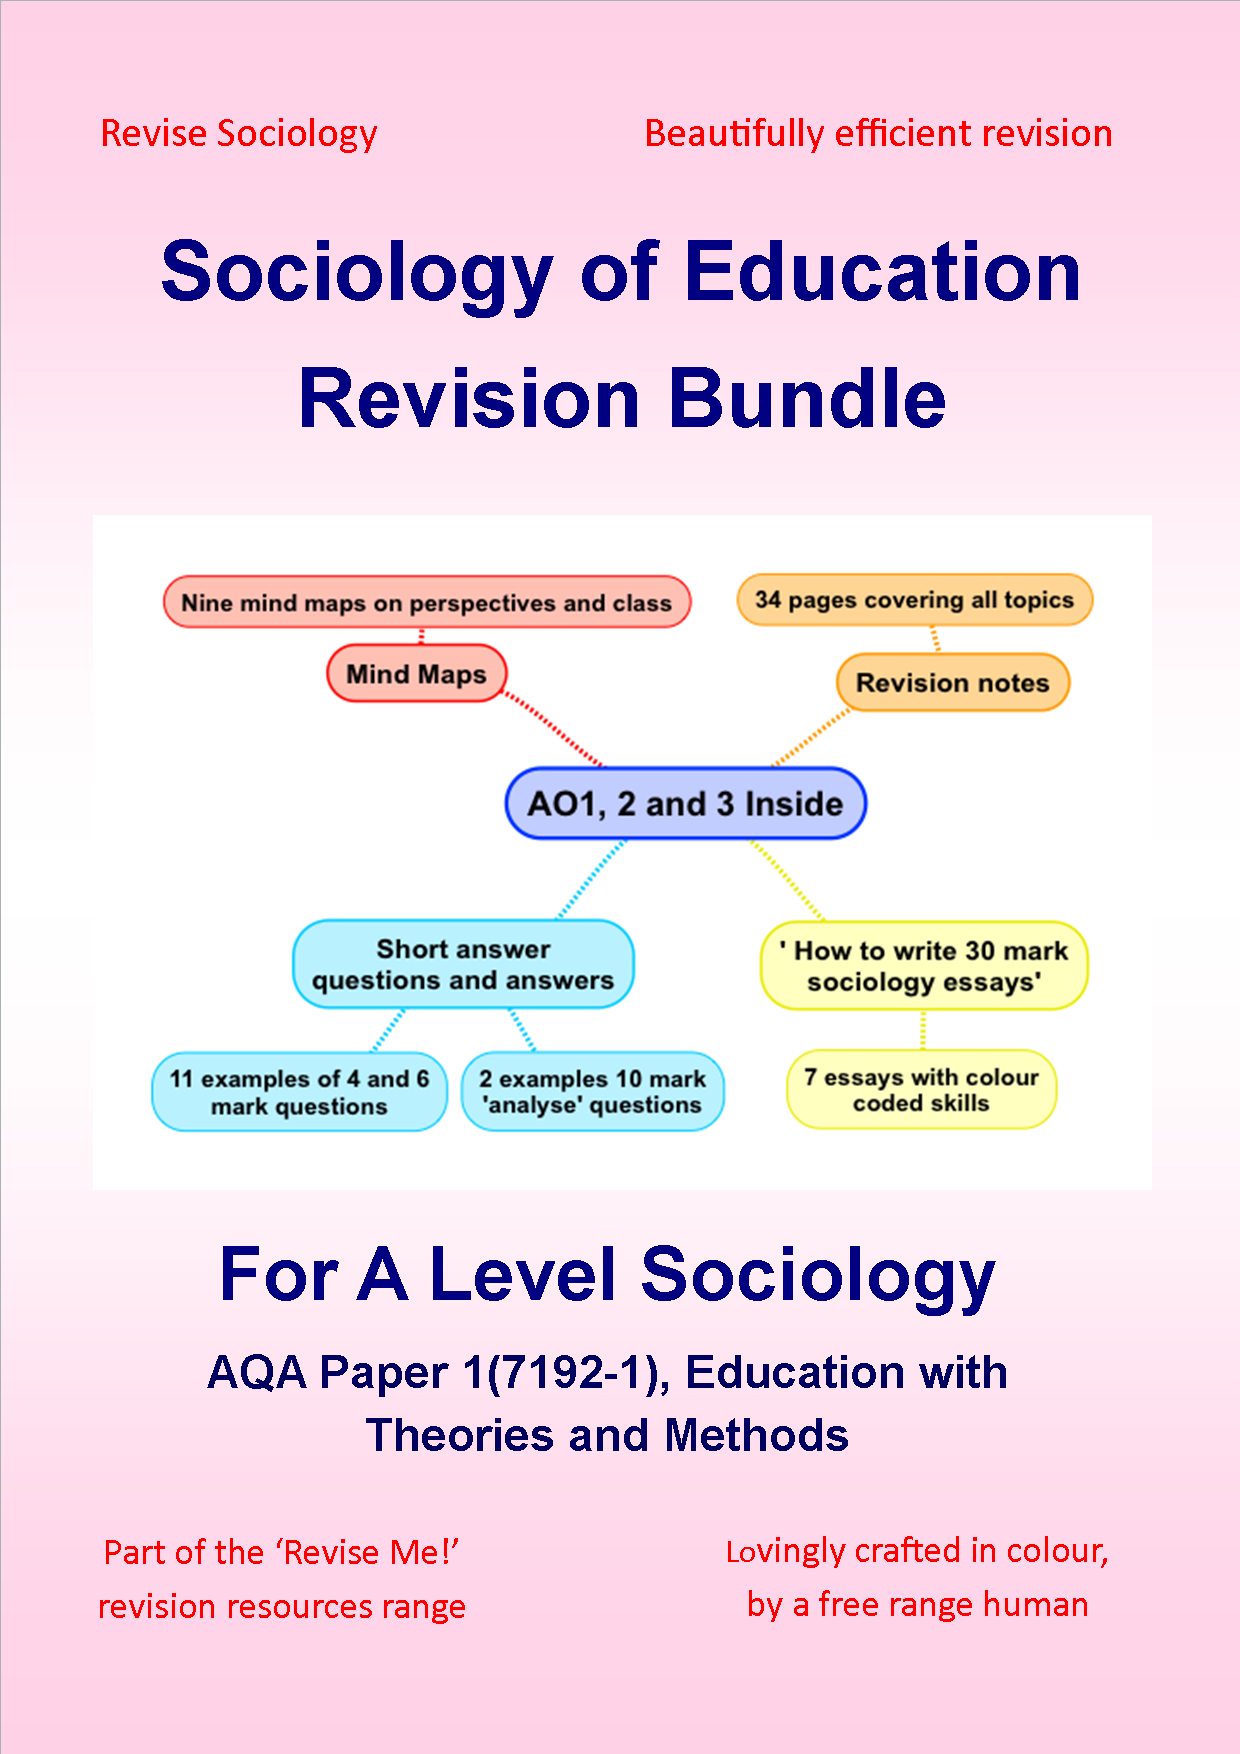 Essay on analyze gender from the three sociological perspectives